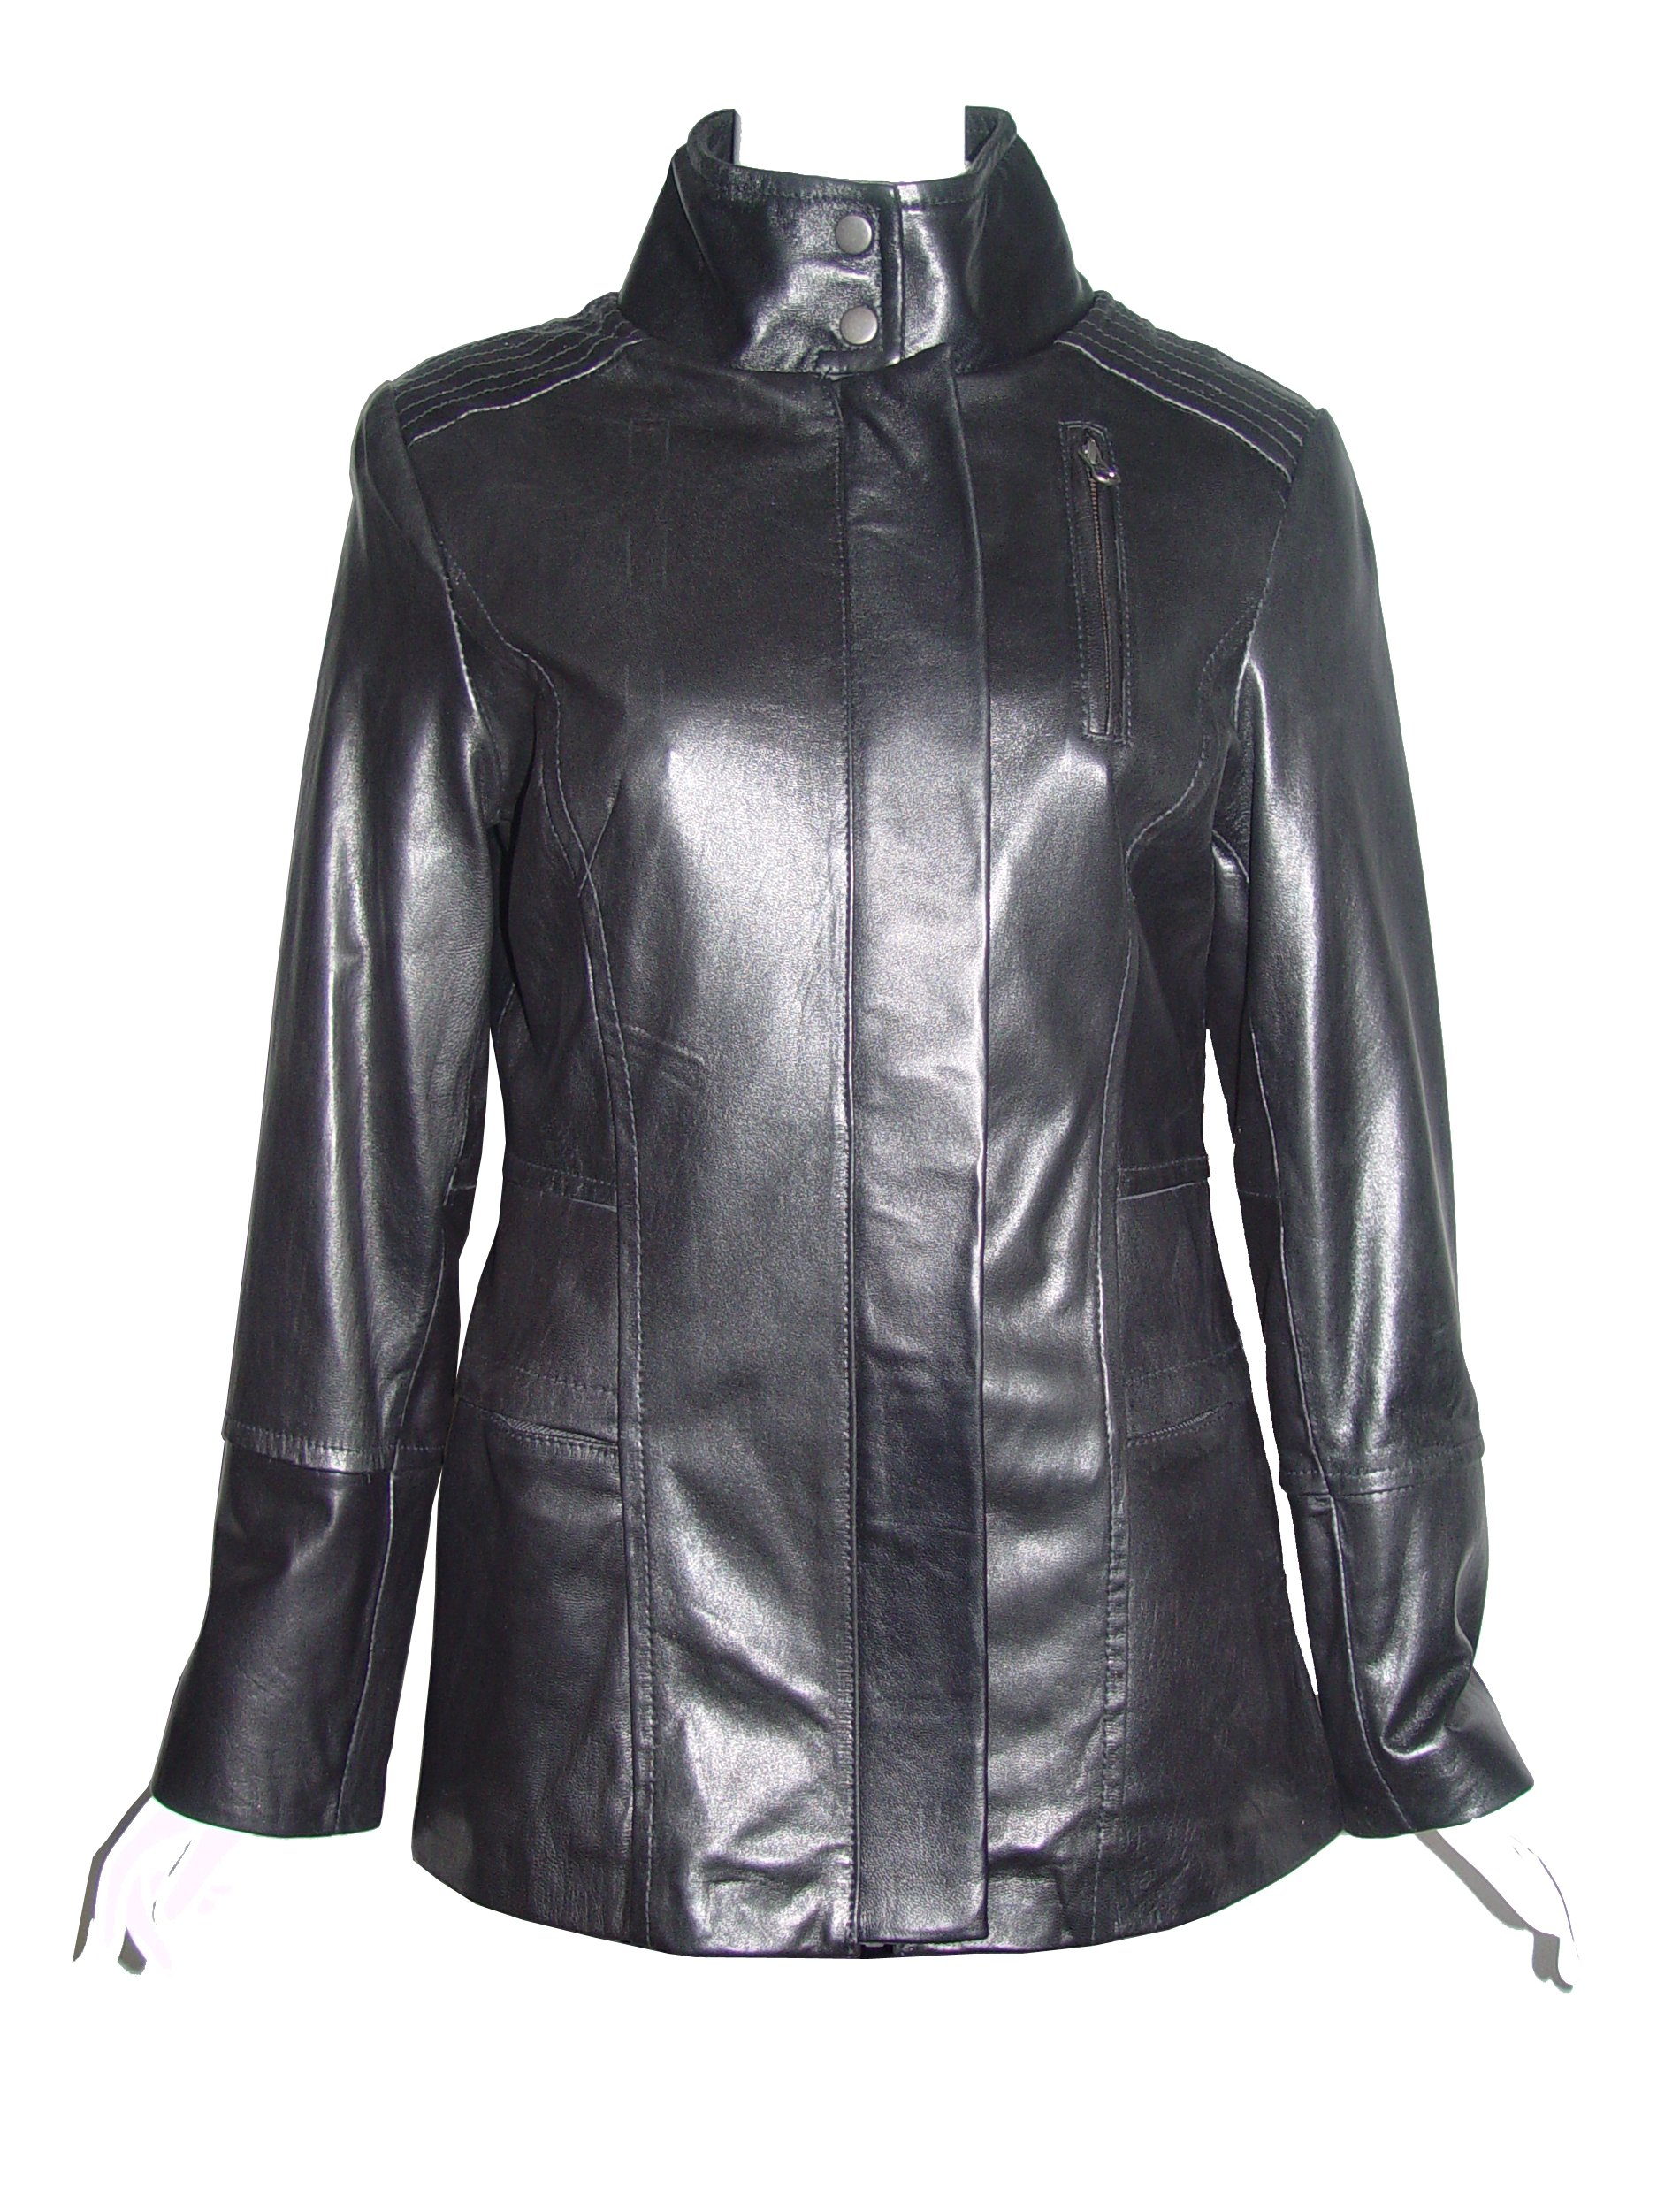 Nettailor 4188 Leather Jackets Clothes Ladies Soft Lamb